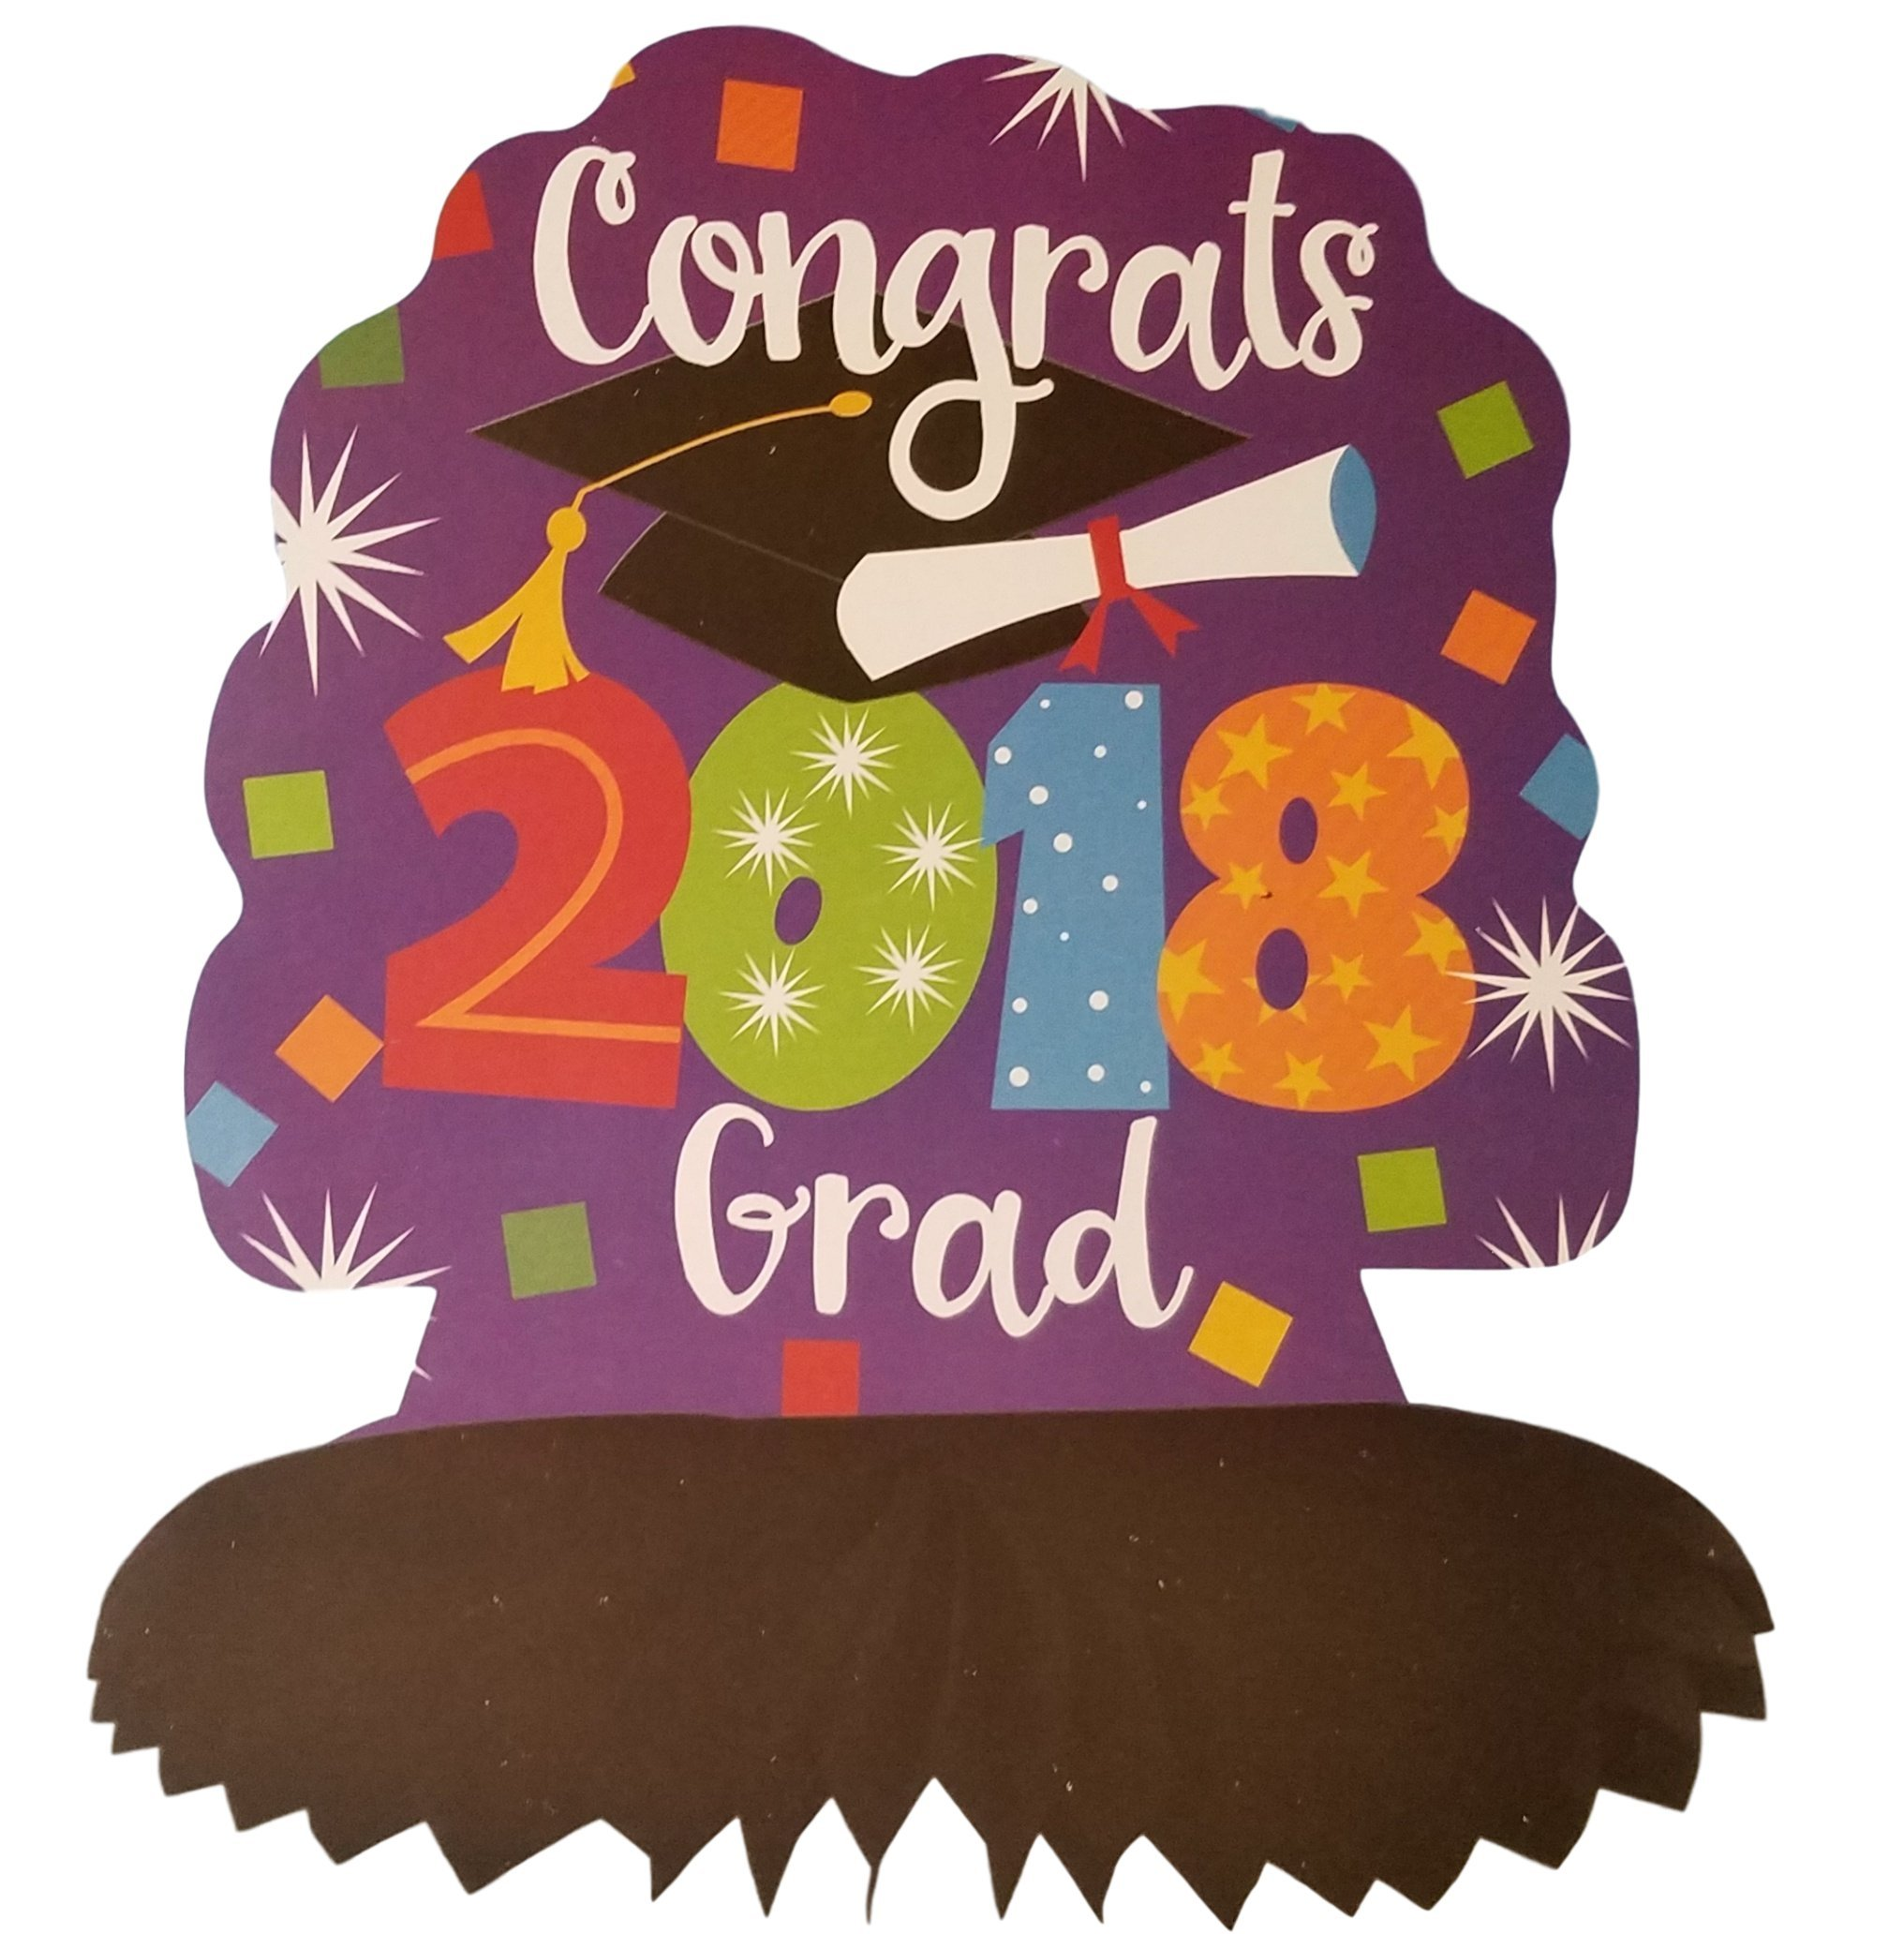 2018 Graduation Party Decorations Bundle: Accessories Include Congrats 2018 Grad Party Banner, Table Centerpiece, Cutouts, and a Beachball in a Confetti Design by TLP Party (Image #3)